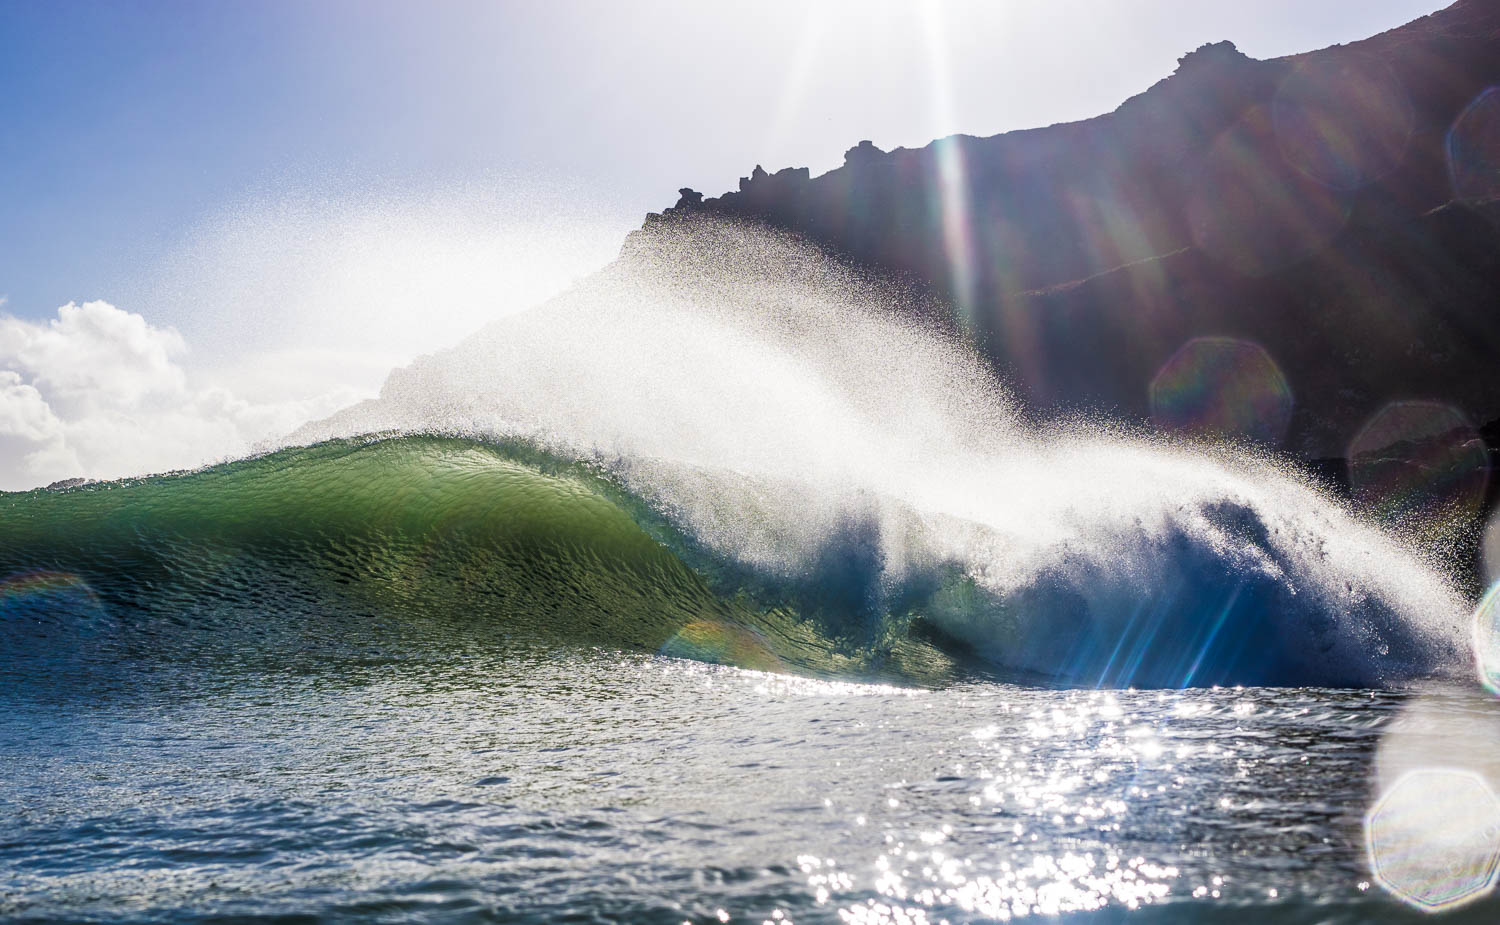 Ben Pascoe's photo in the Global Surf calendar 2018